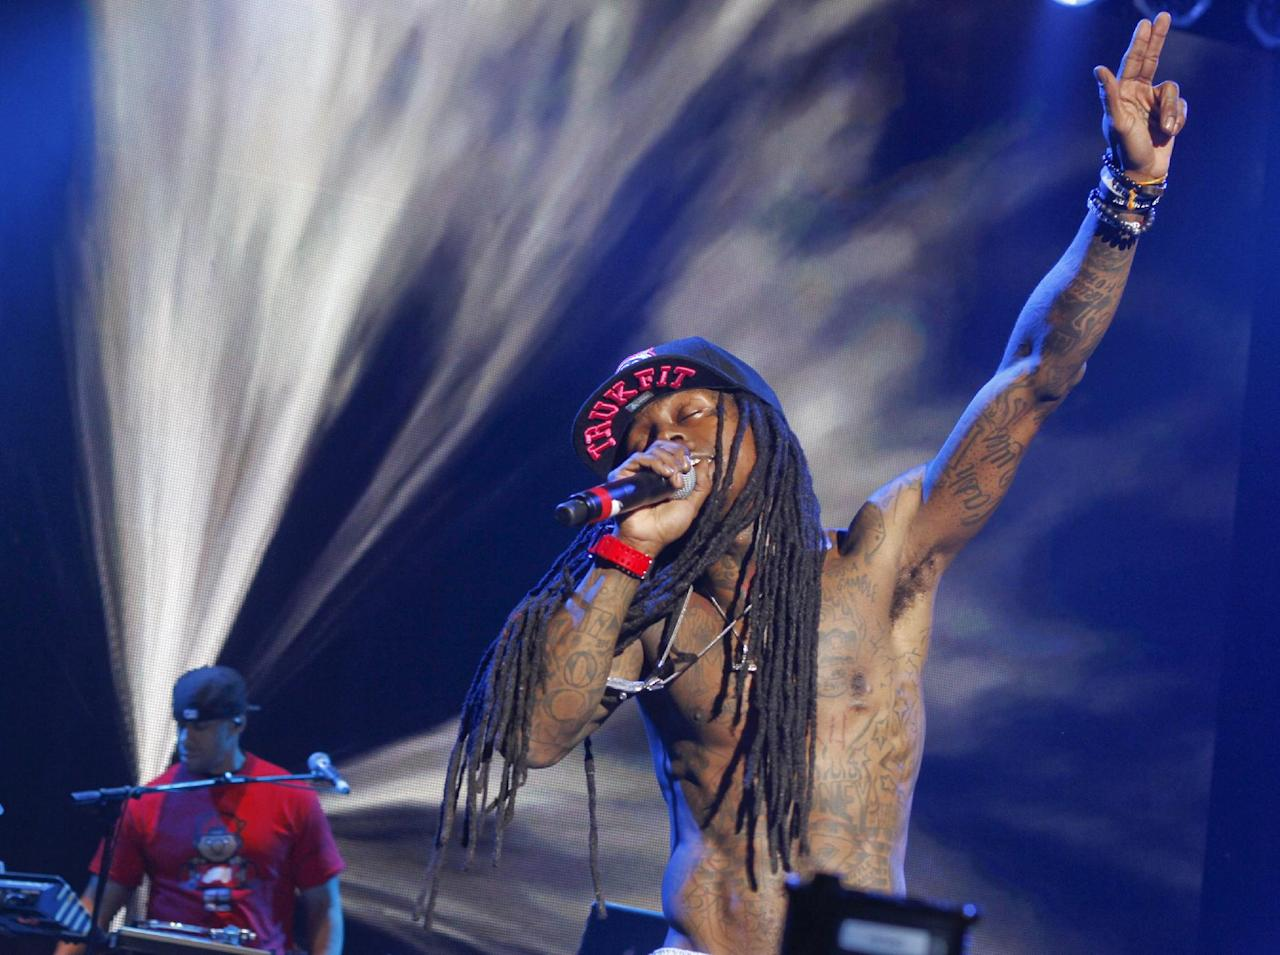 In this March 15, 2012 image, Lil Wayne performs during the SXSW Music Festival in Austin, Texas.(AP Photo/Jack Plunkett)